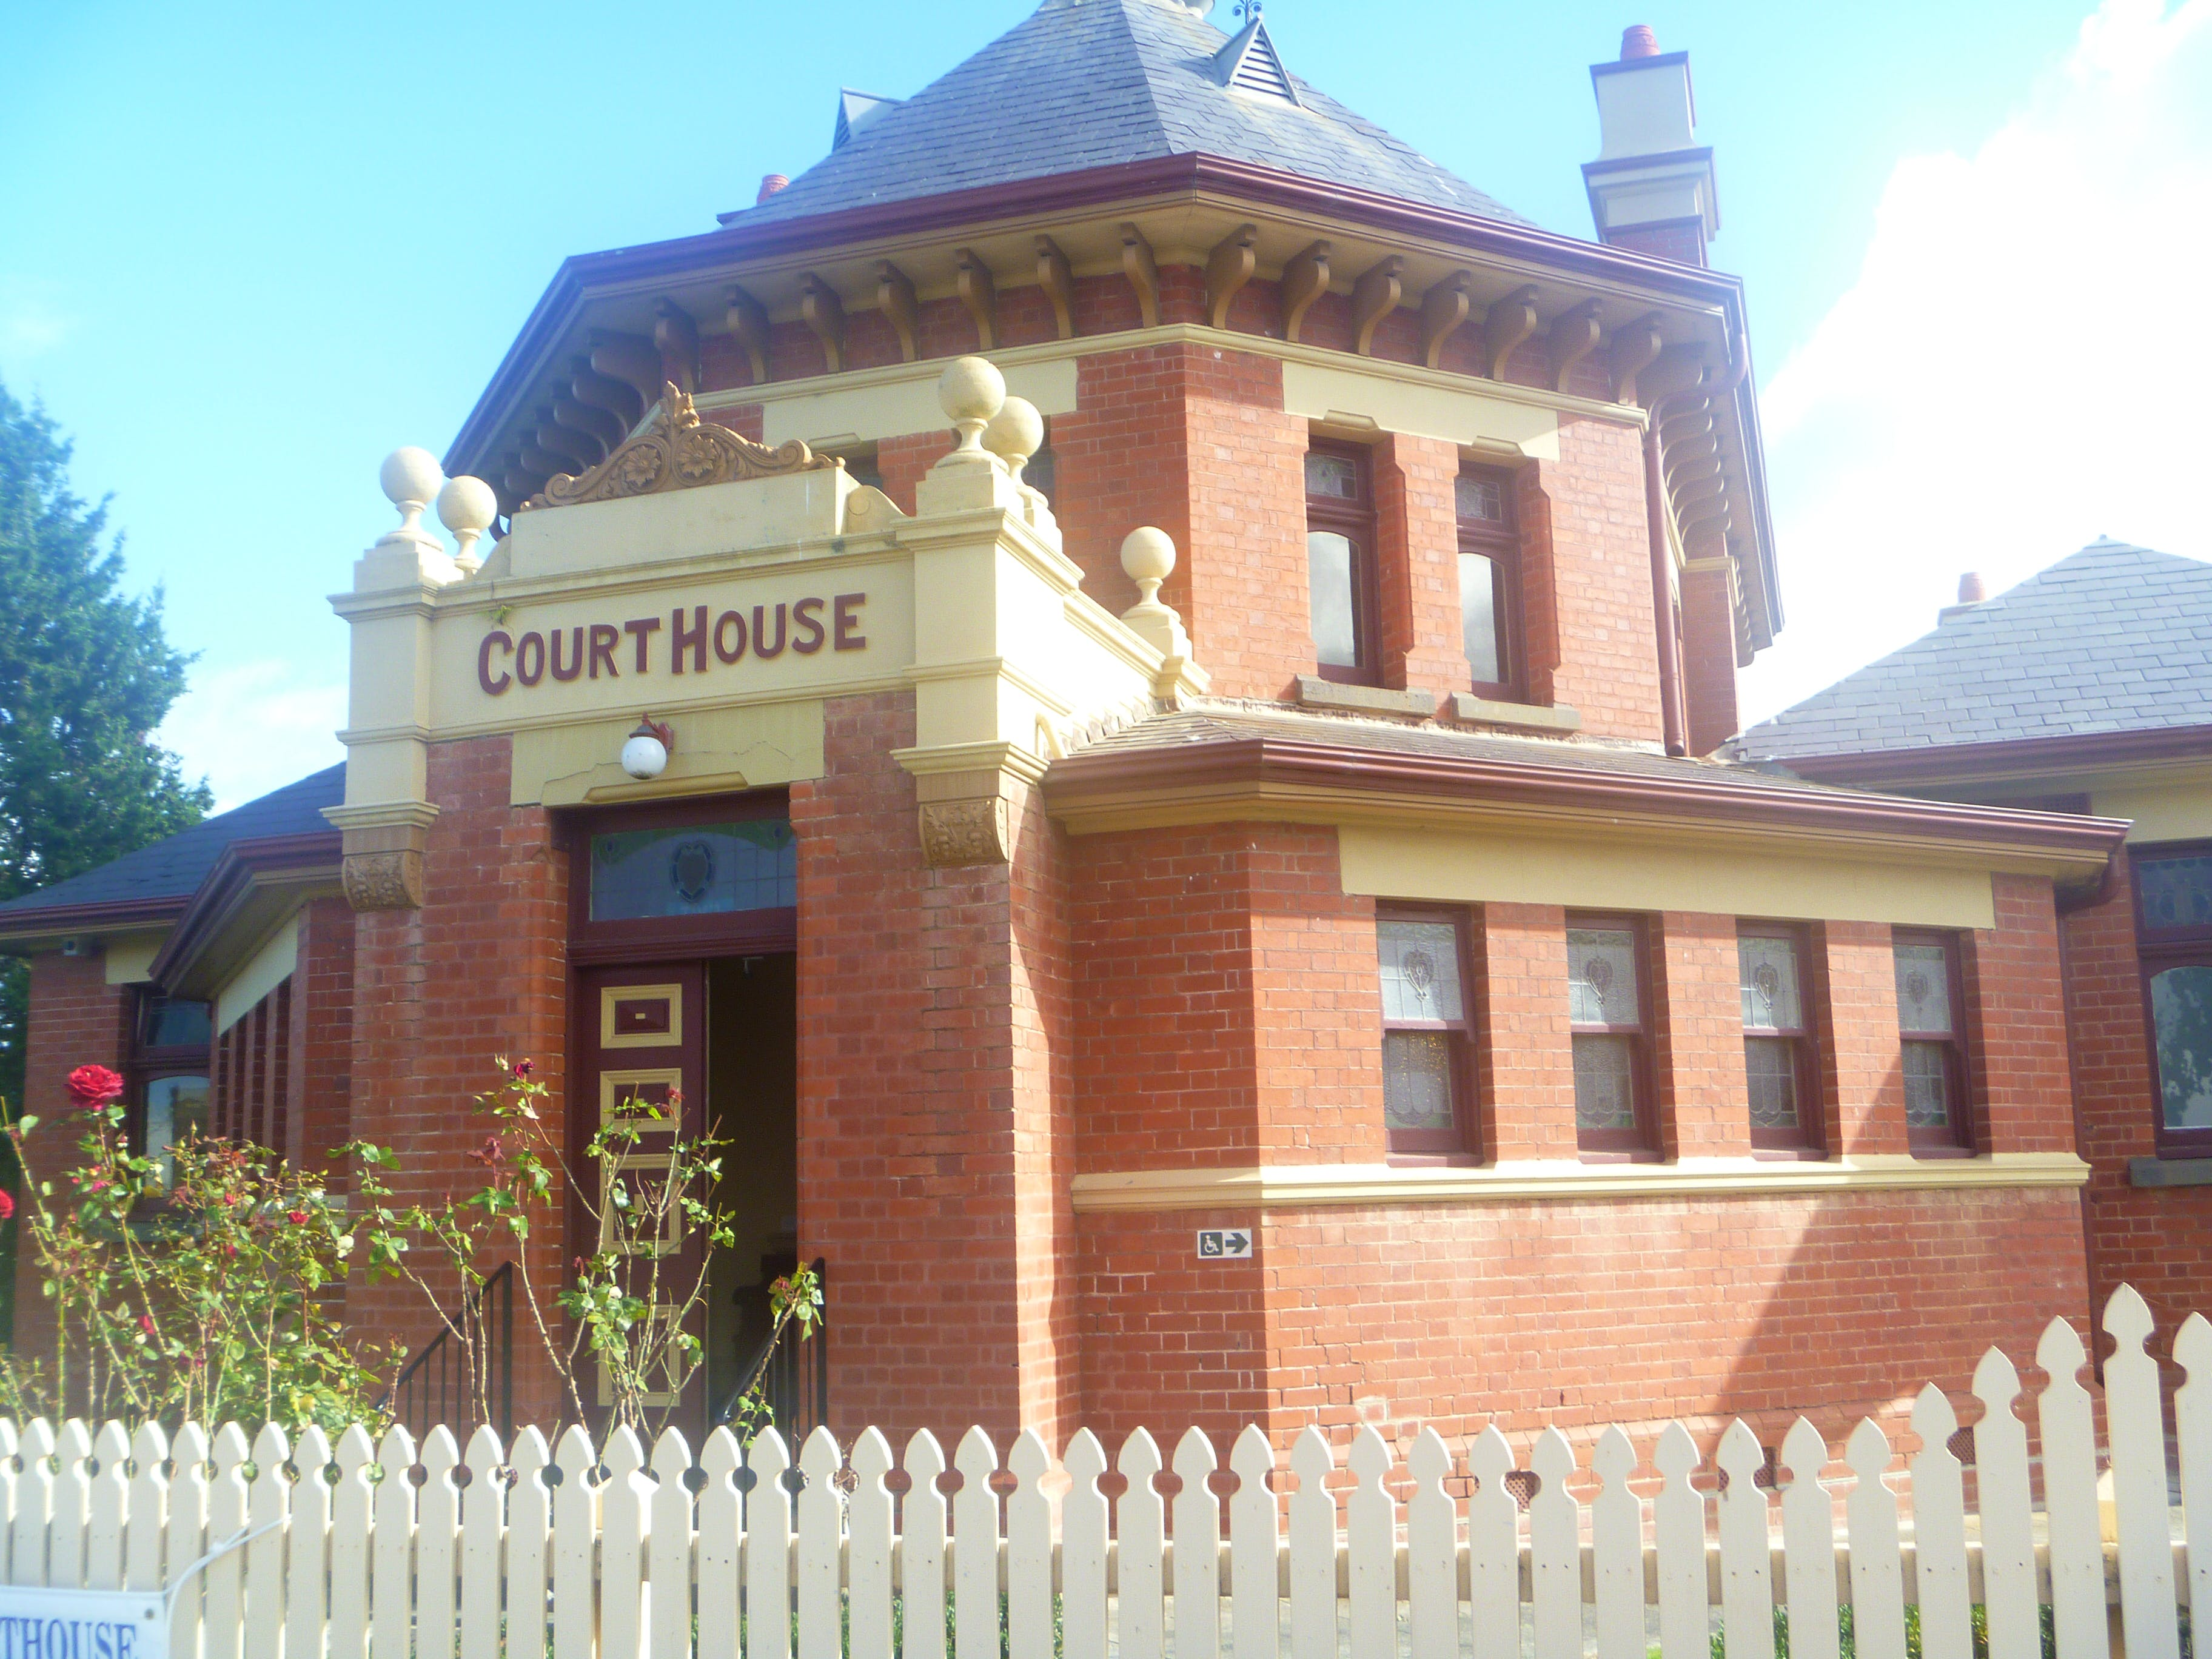 The Court House Gallery